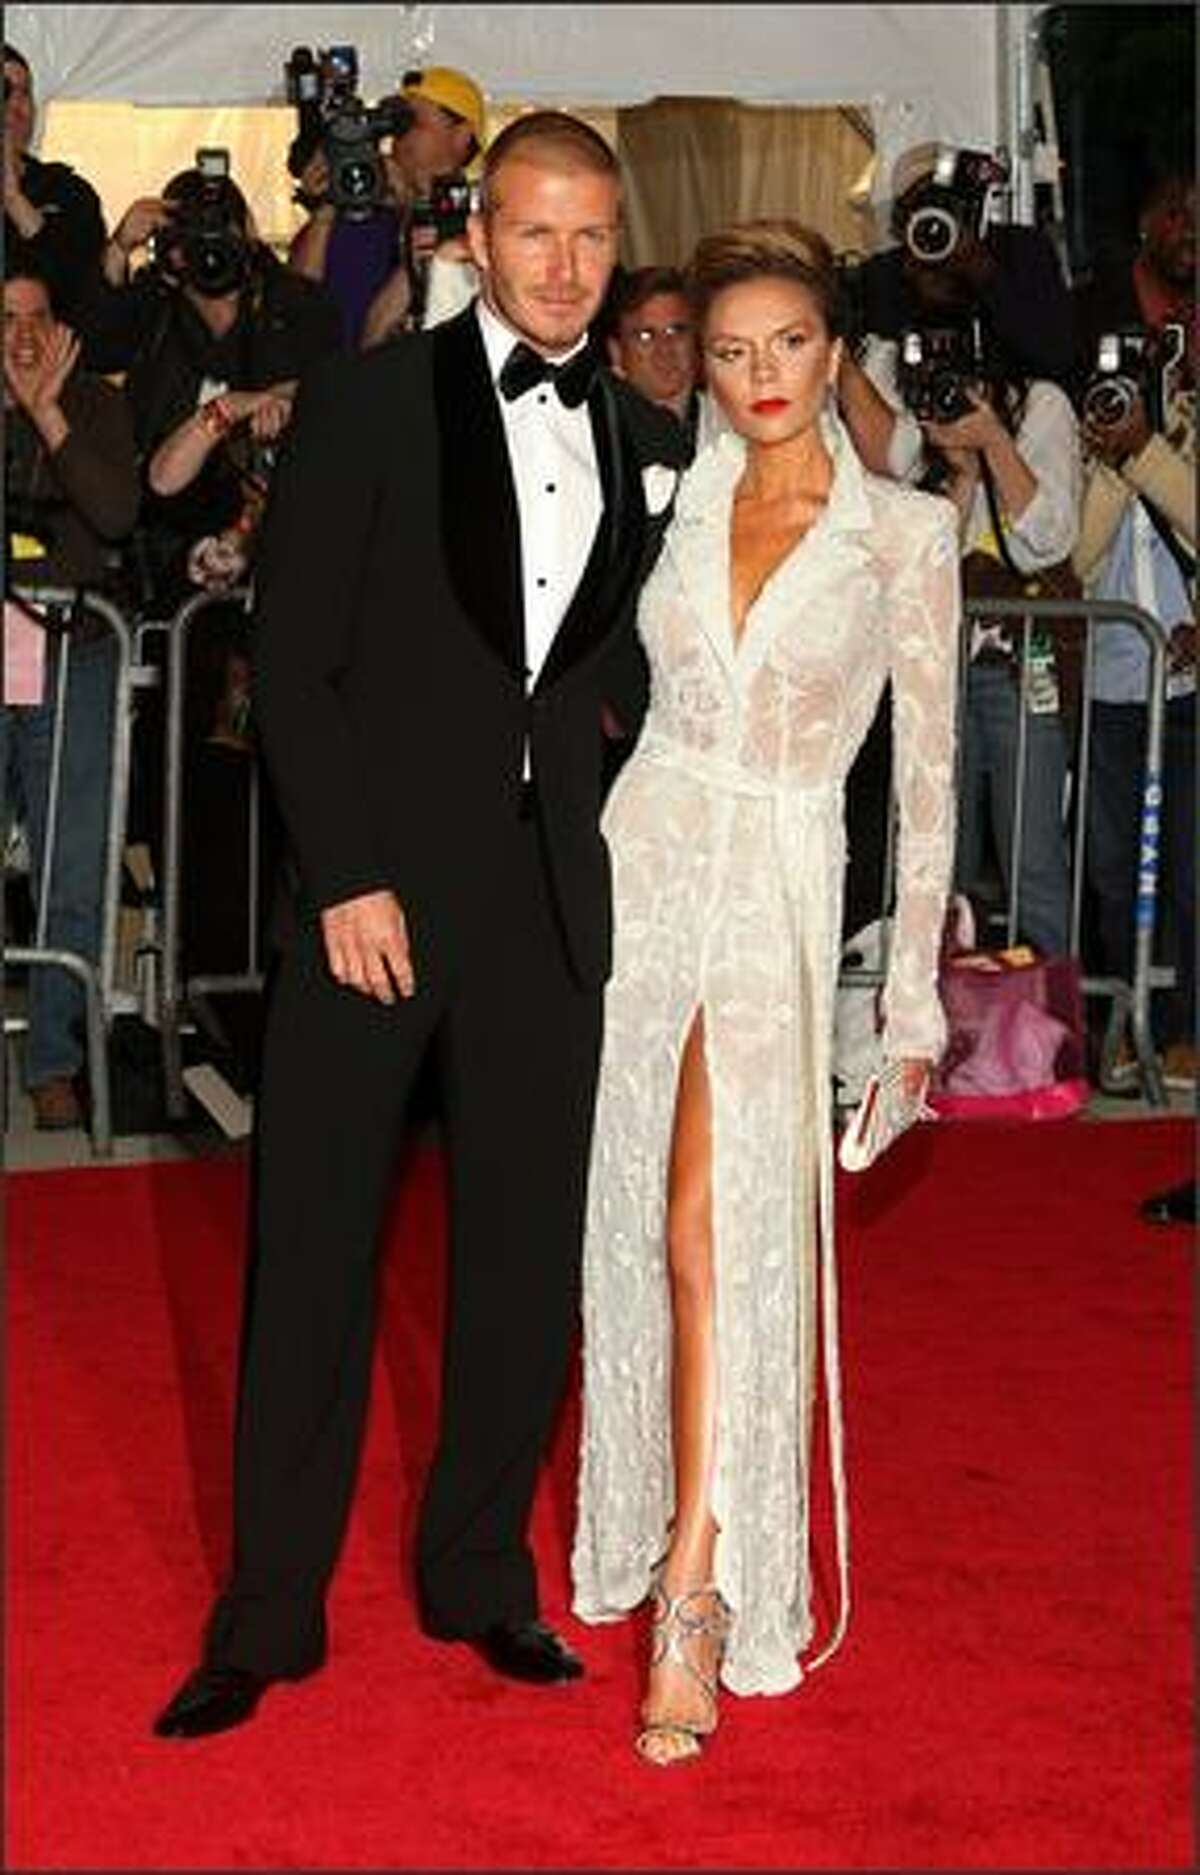 """Soccer star David Beckham and wife Victoria arrive at the Metropolitan Museum of Art Costume Institute gala for Thursday's opening of the exhibit """"Superheroes: Fashion and Fantasy,"""" in New York. The annual gala has become a red-carpet showcase for designer gowns worn by celebrities. It has become New York's top red-carpet event of the year."""